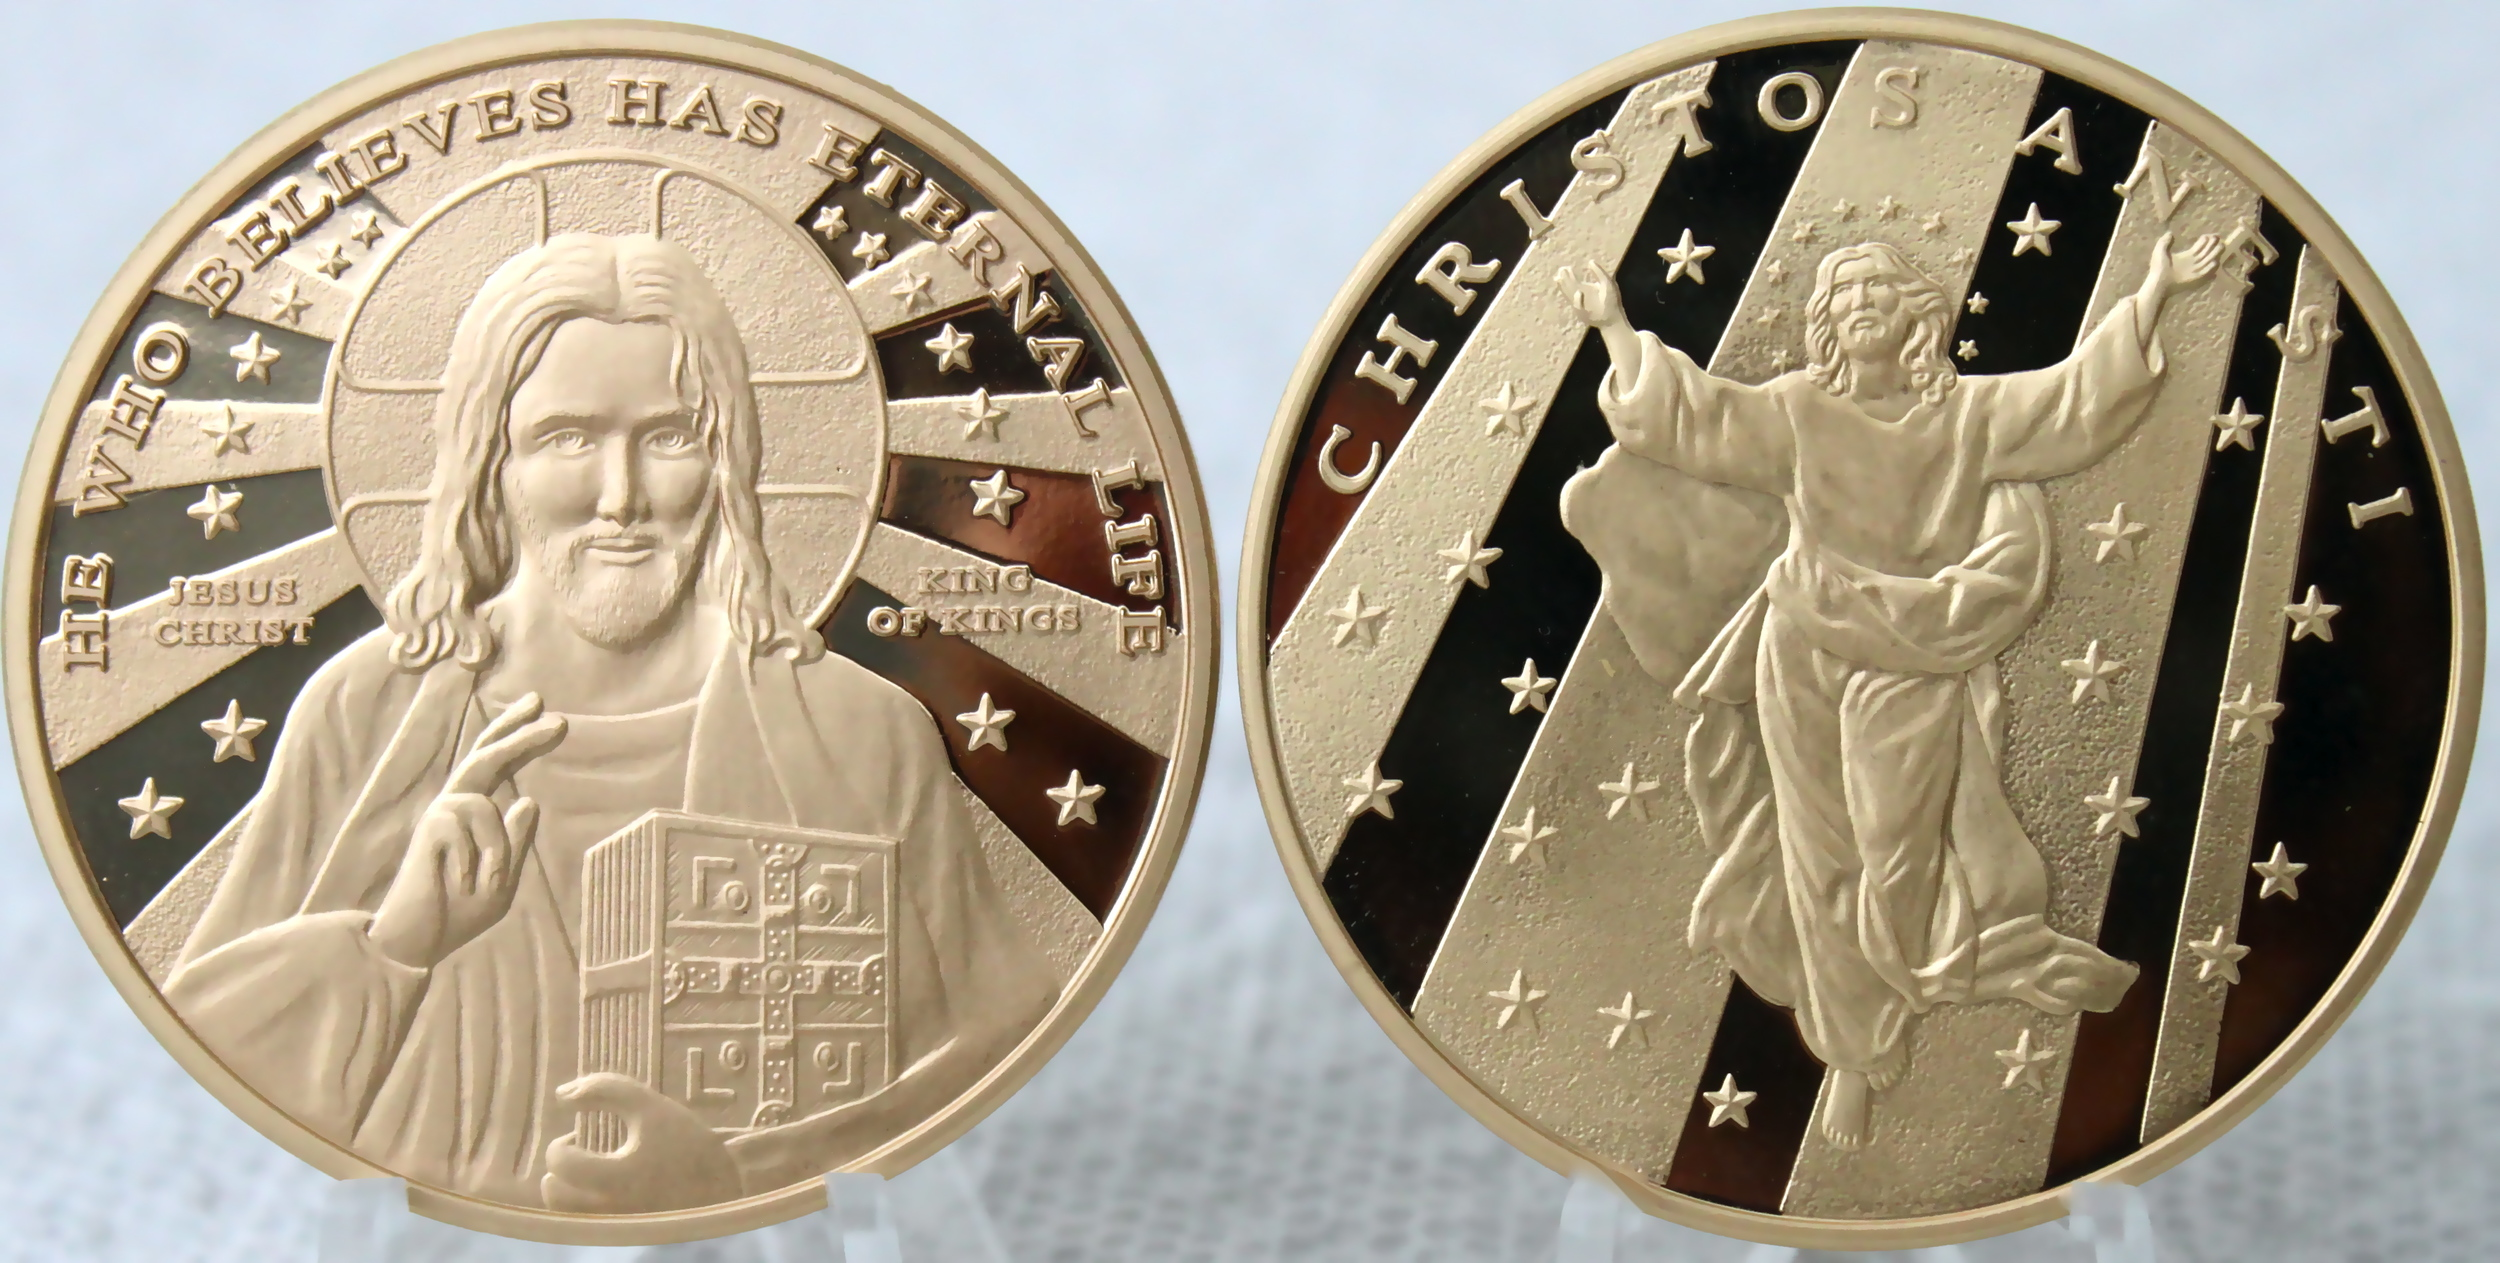 The Jesus Coin - Solid brass. Also available for purchase, a display case and/or acrylic stand. Makes a great gift!